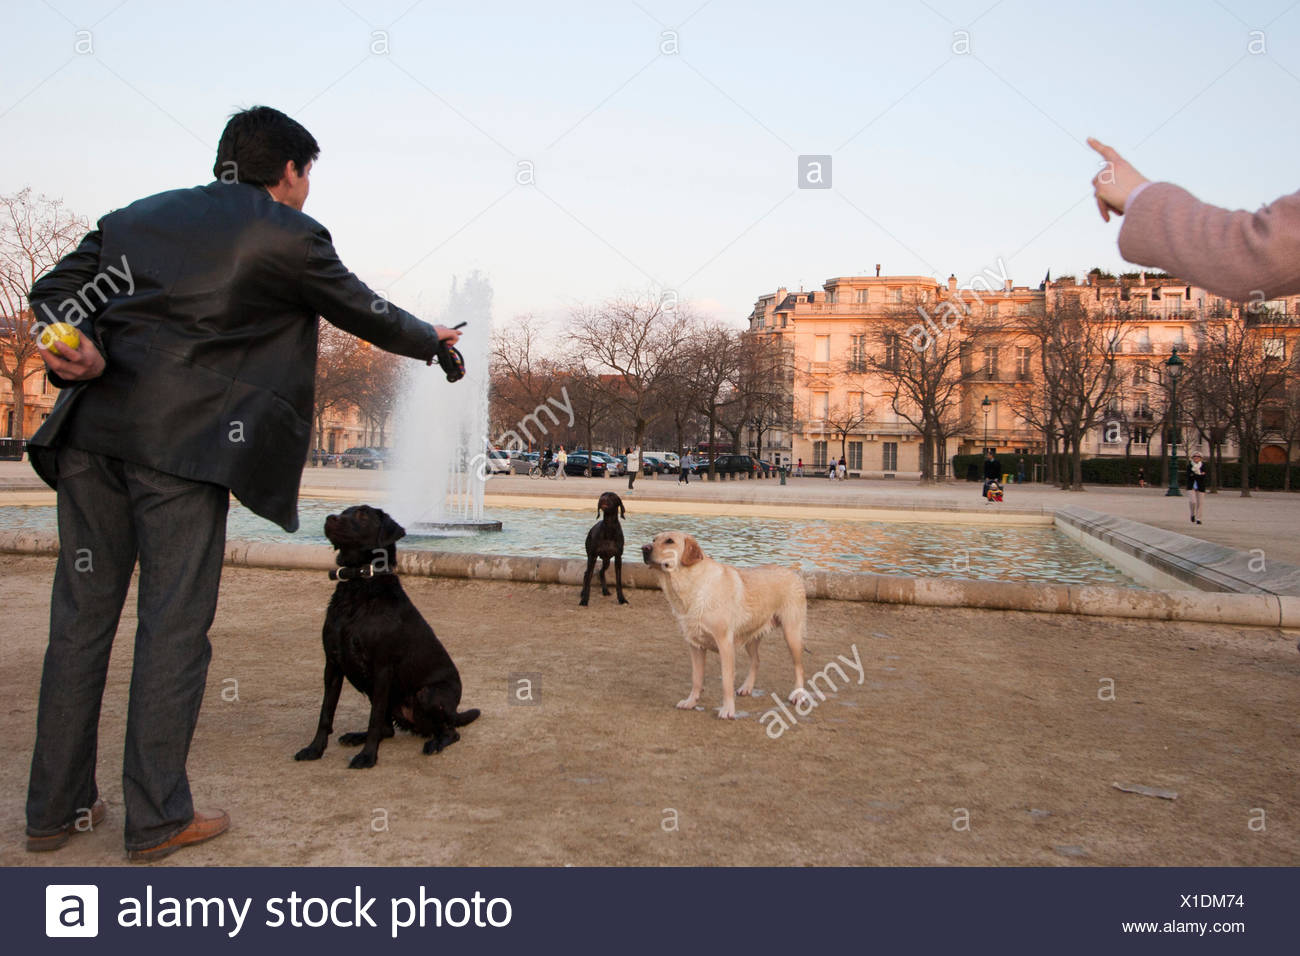 Dogs and their owners converge most evenings in the Parc du Champ de Mars. - Stock Image